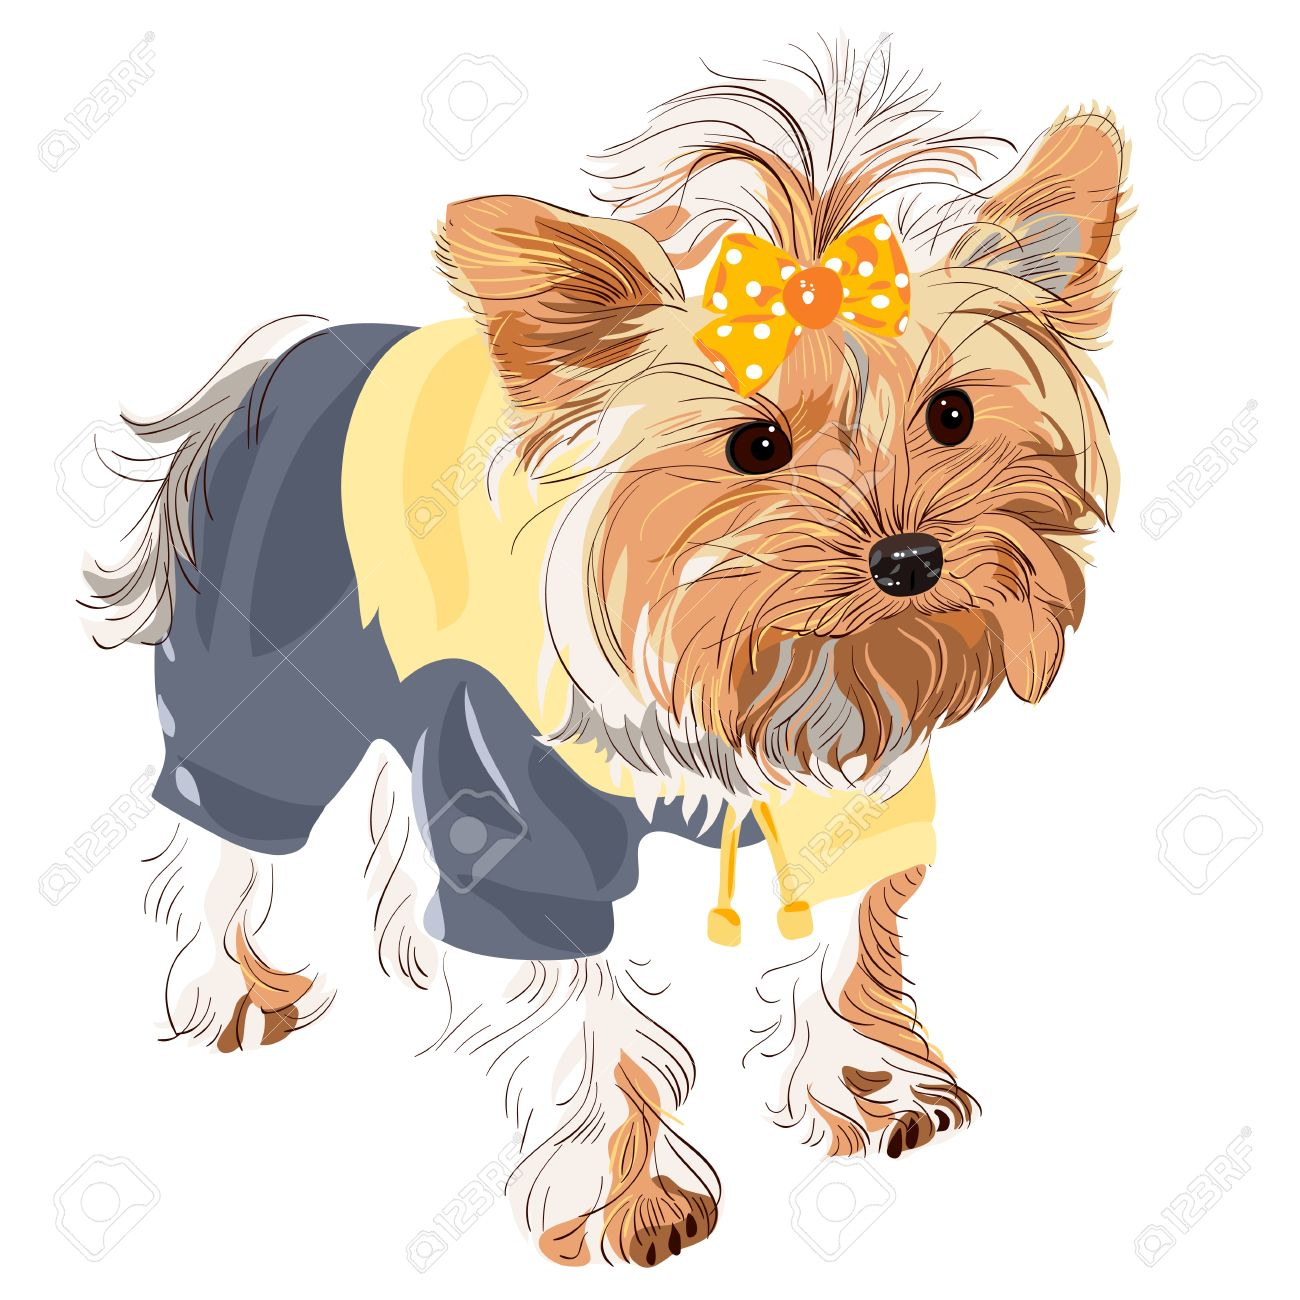 924 yorkshire terrier stock vector illustration and royalty free